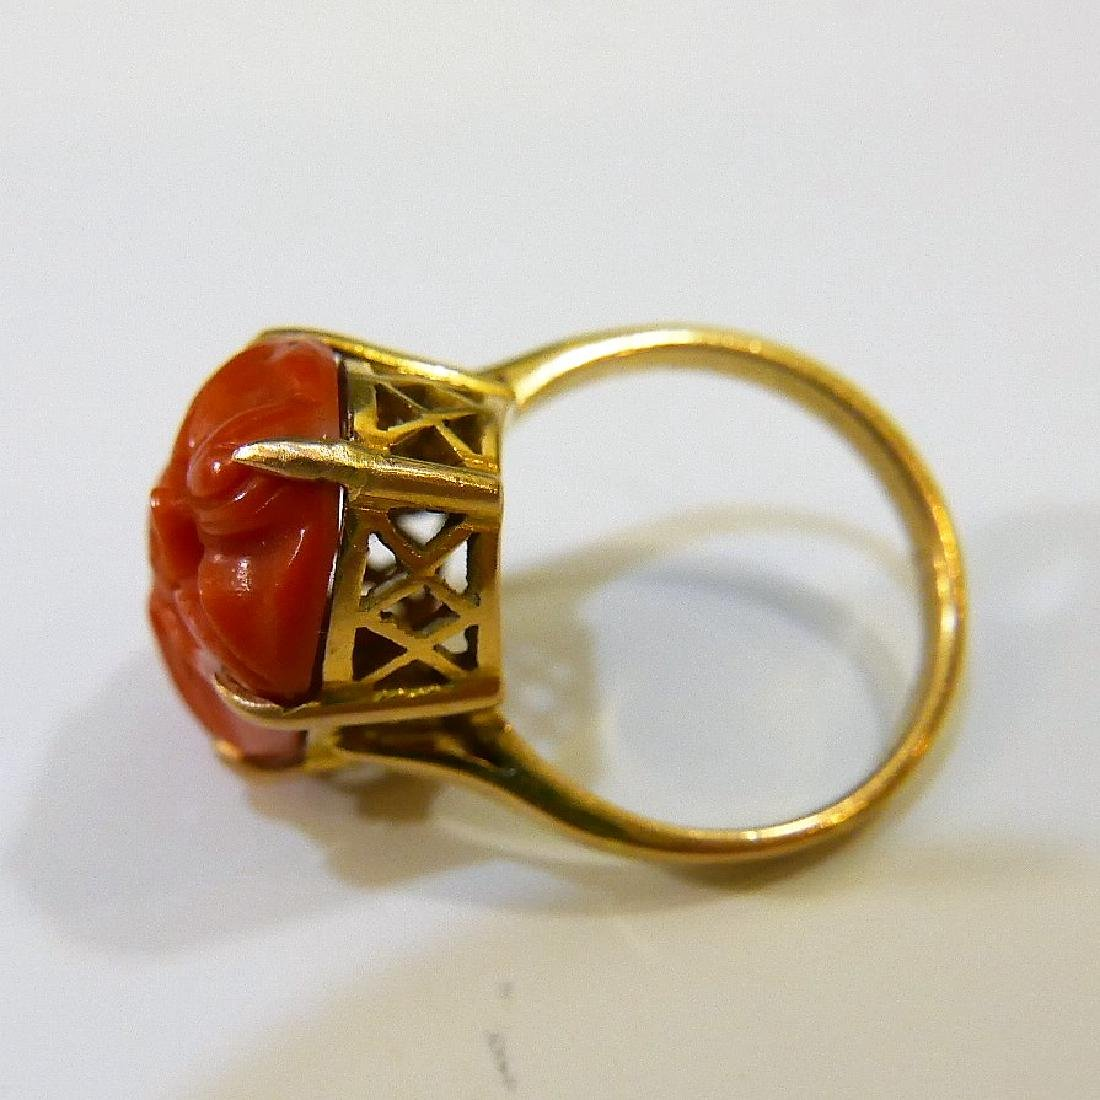 14K GOLD RED CORAL RING 5 GRAMS - 4